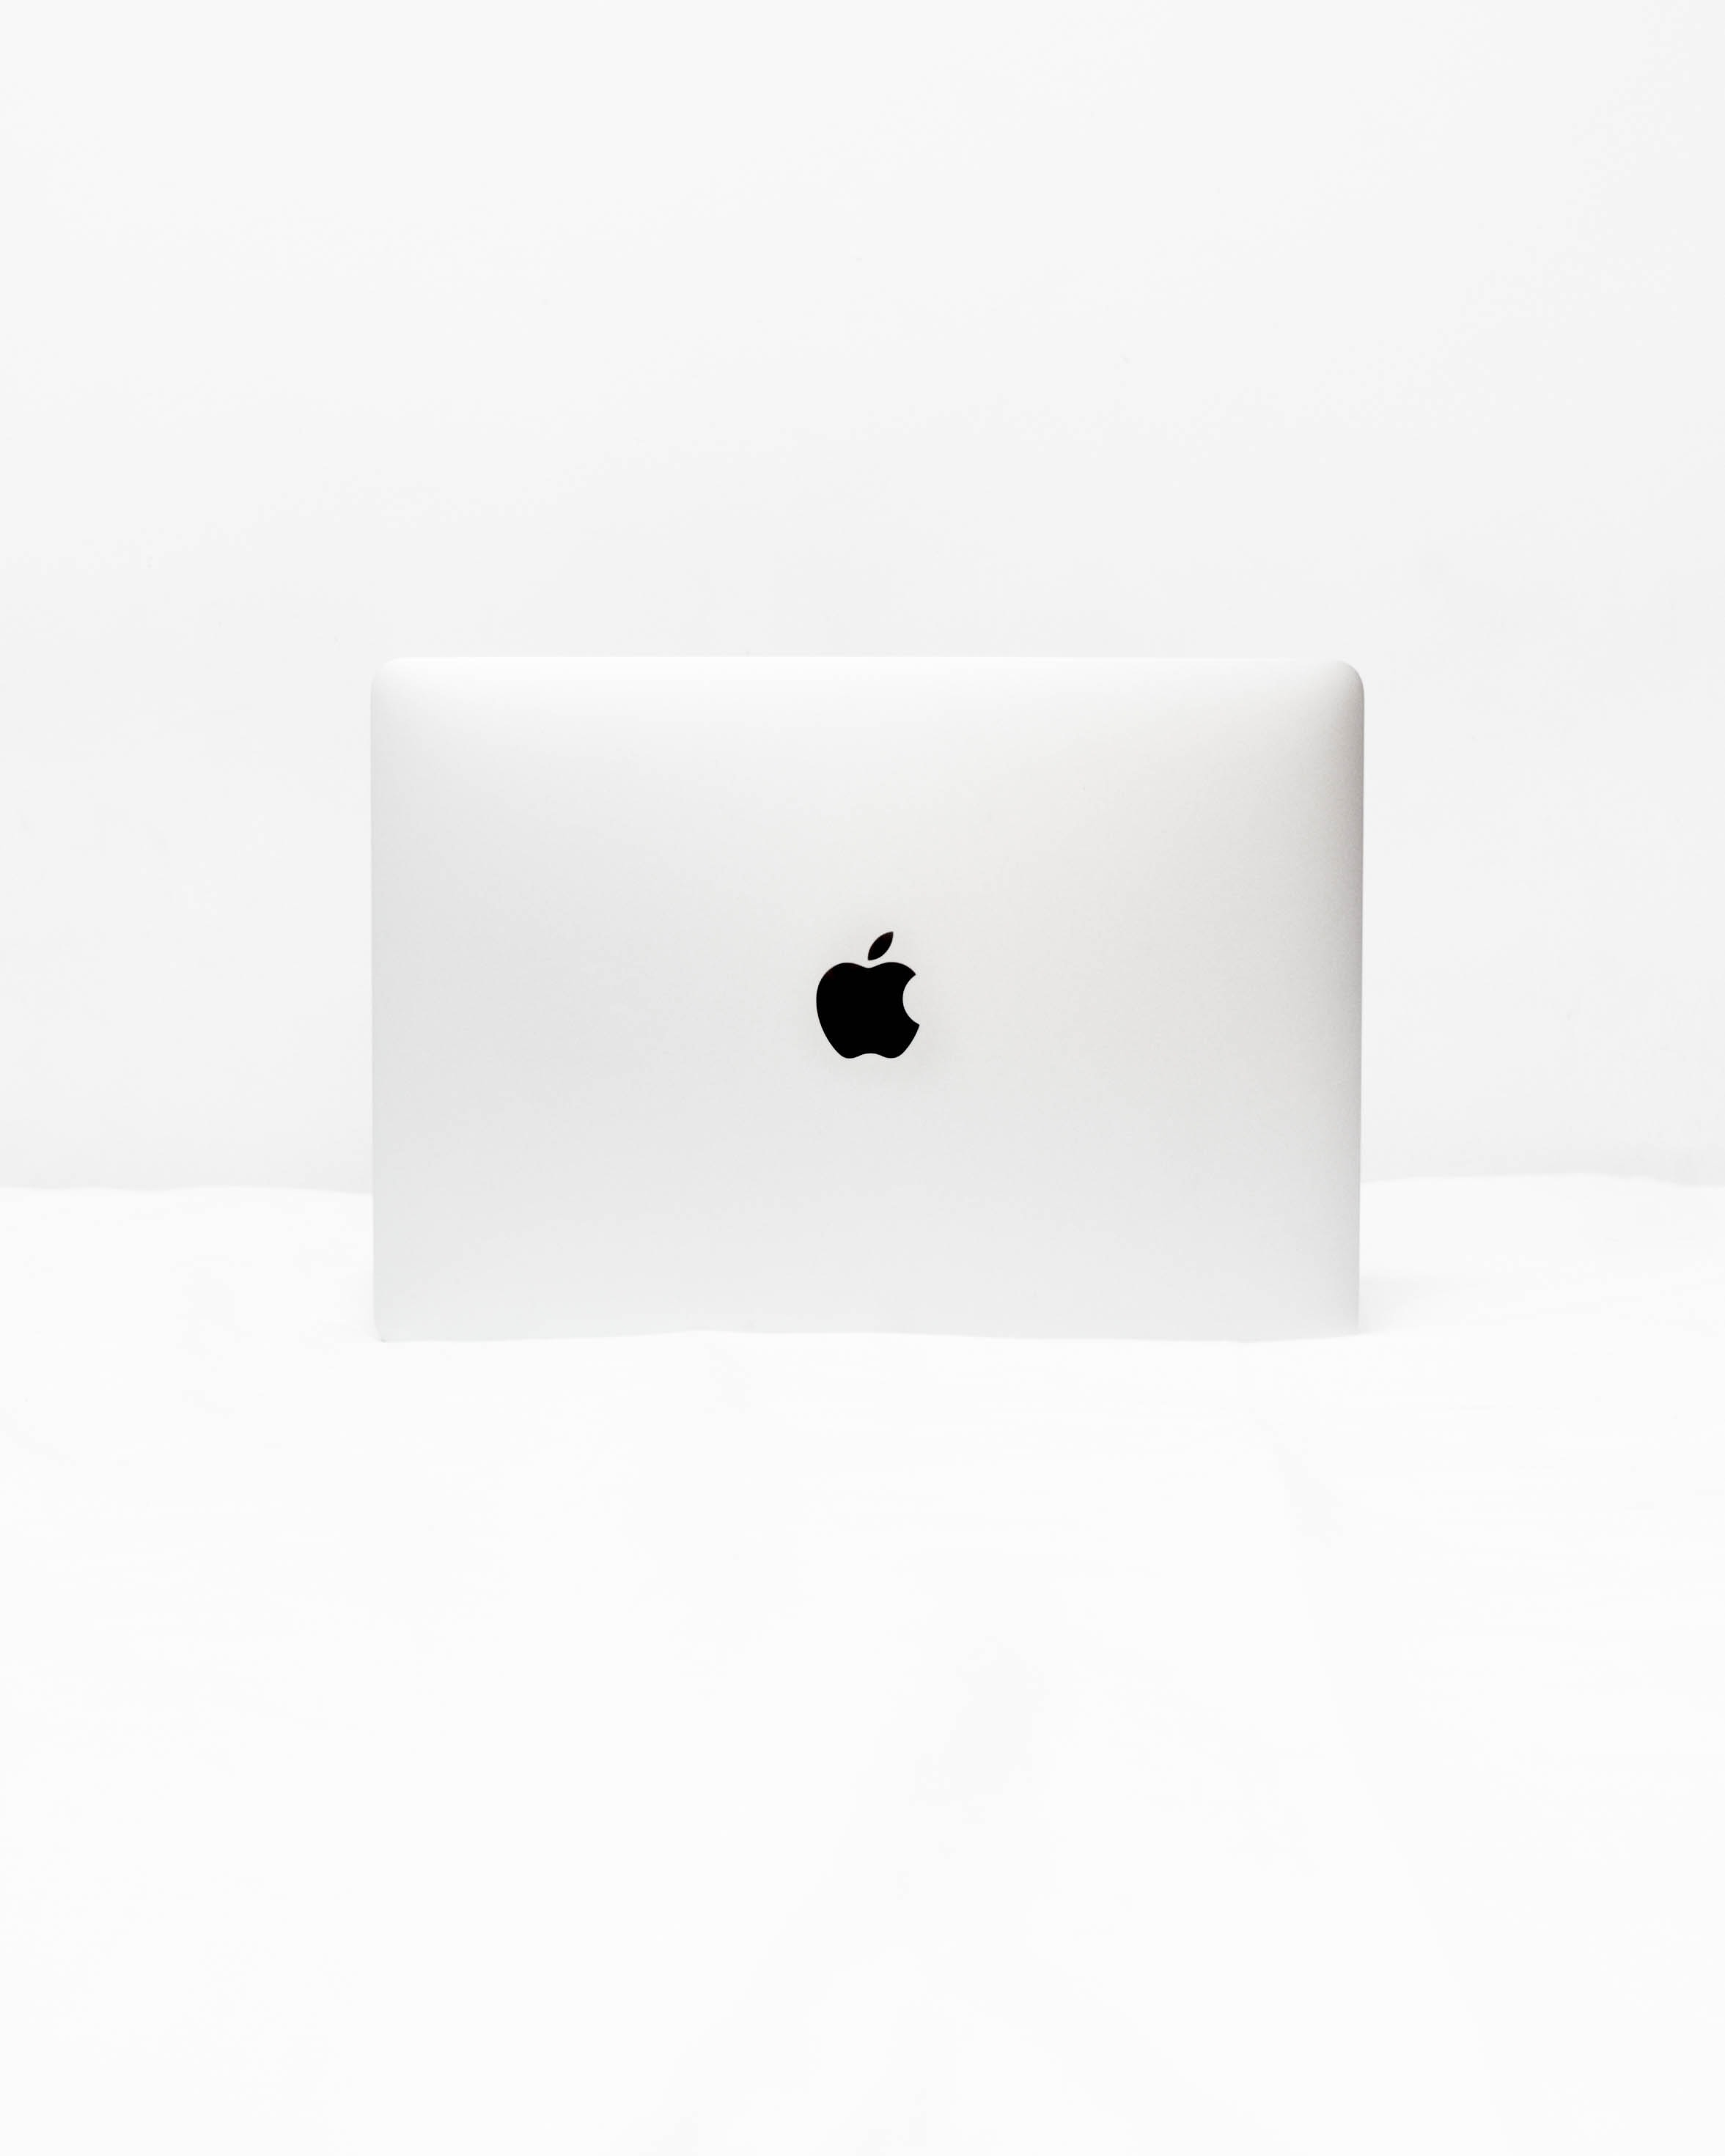 MacBook White open on white surface